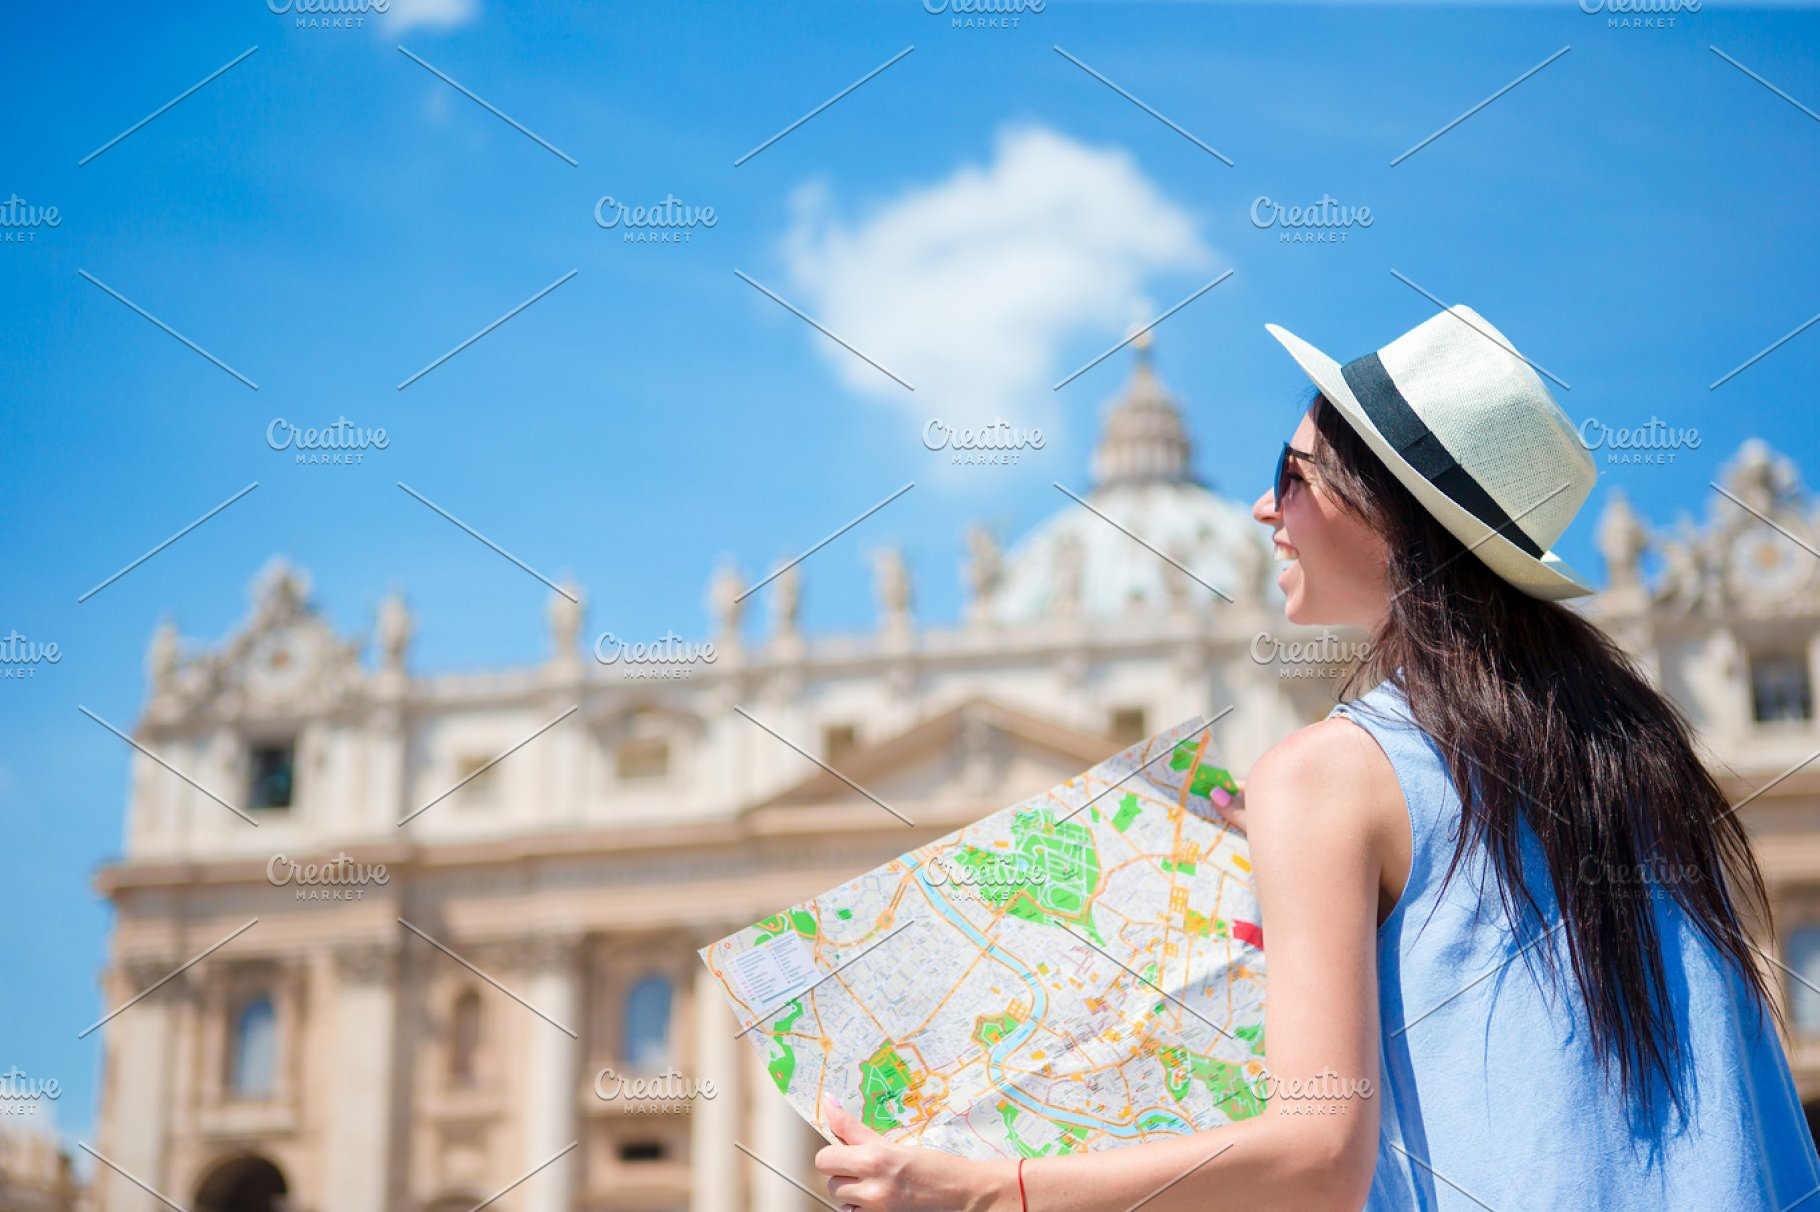 Happy young woman with city map in Vatican city and St  Peter's Basilica  church, Rome, Italy  Travel tourist woman with map outdoors during holidays